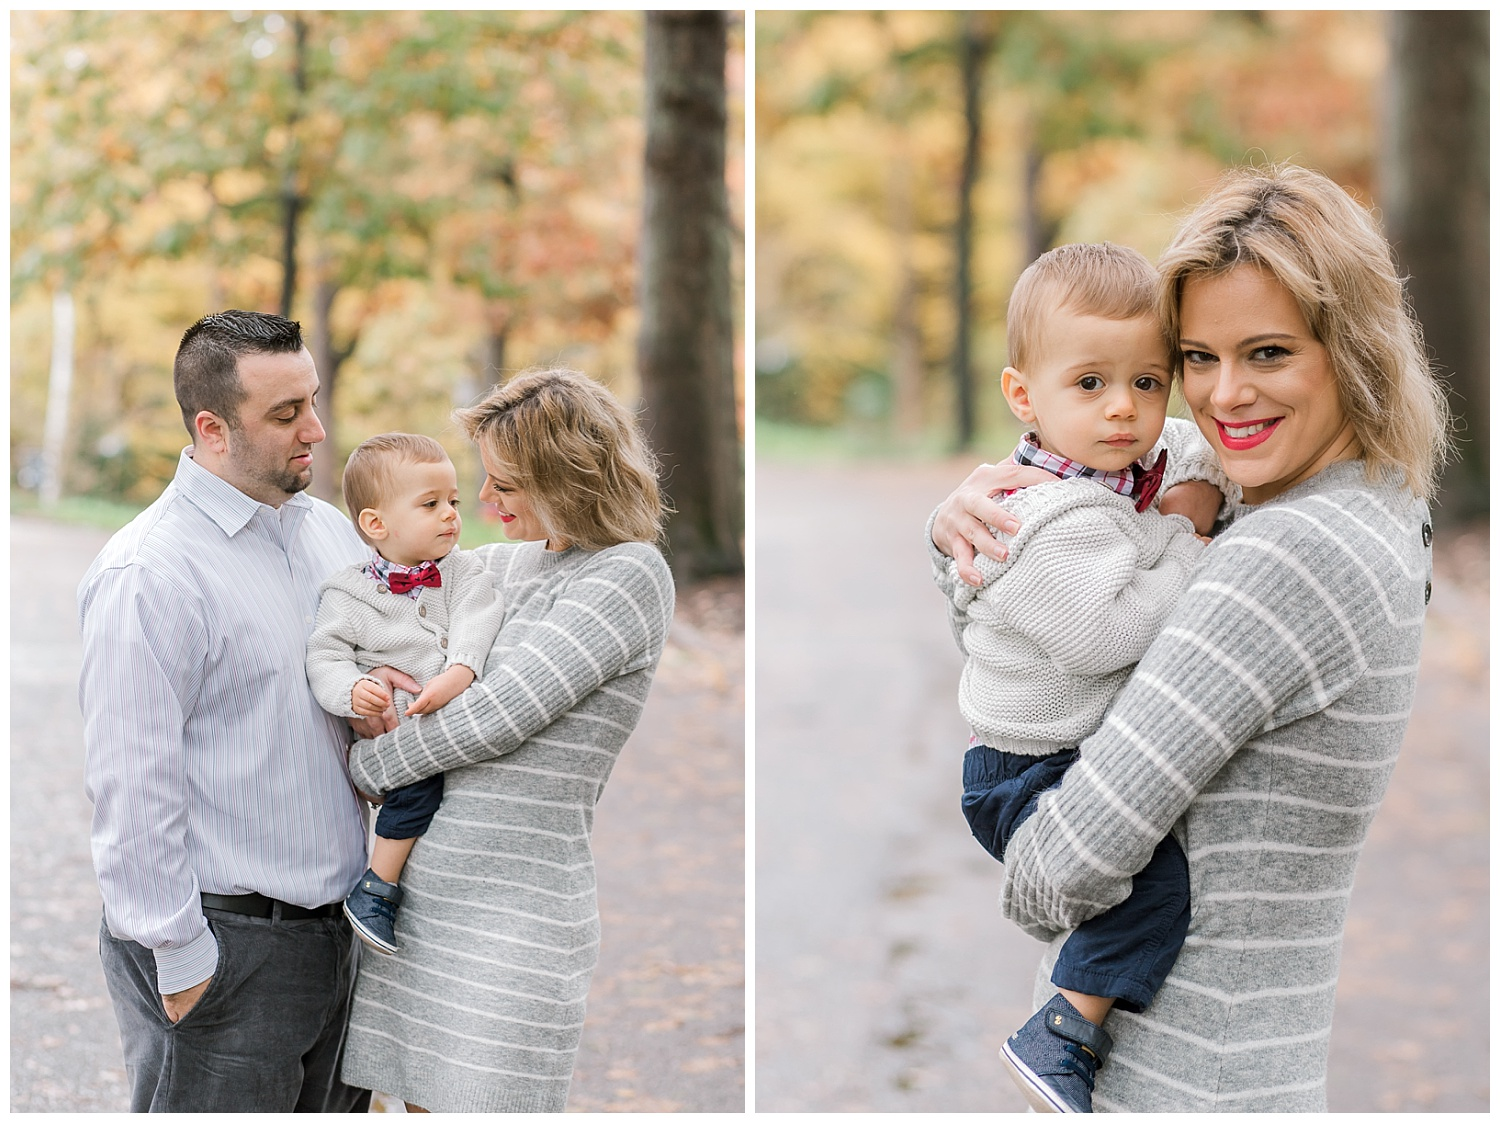 wellesley_college_fall_family_photos_erica_pezente_photography (1).jpg